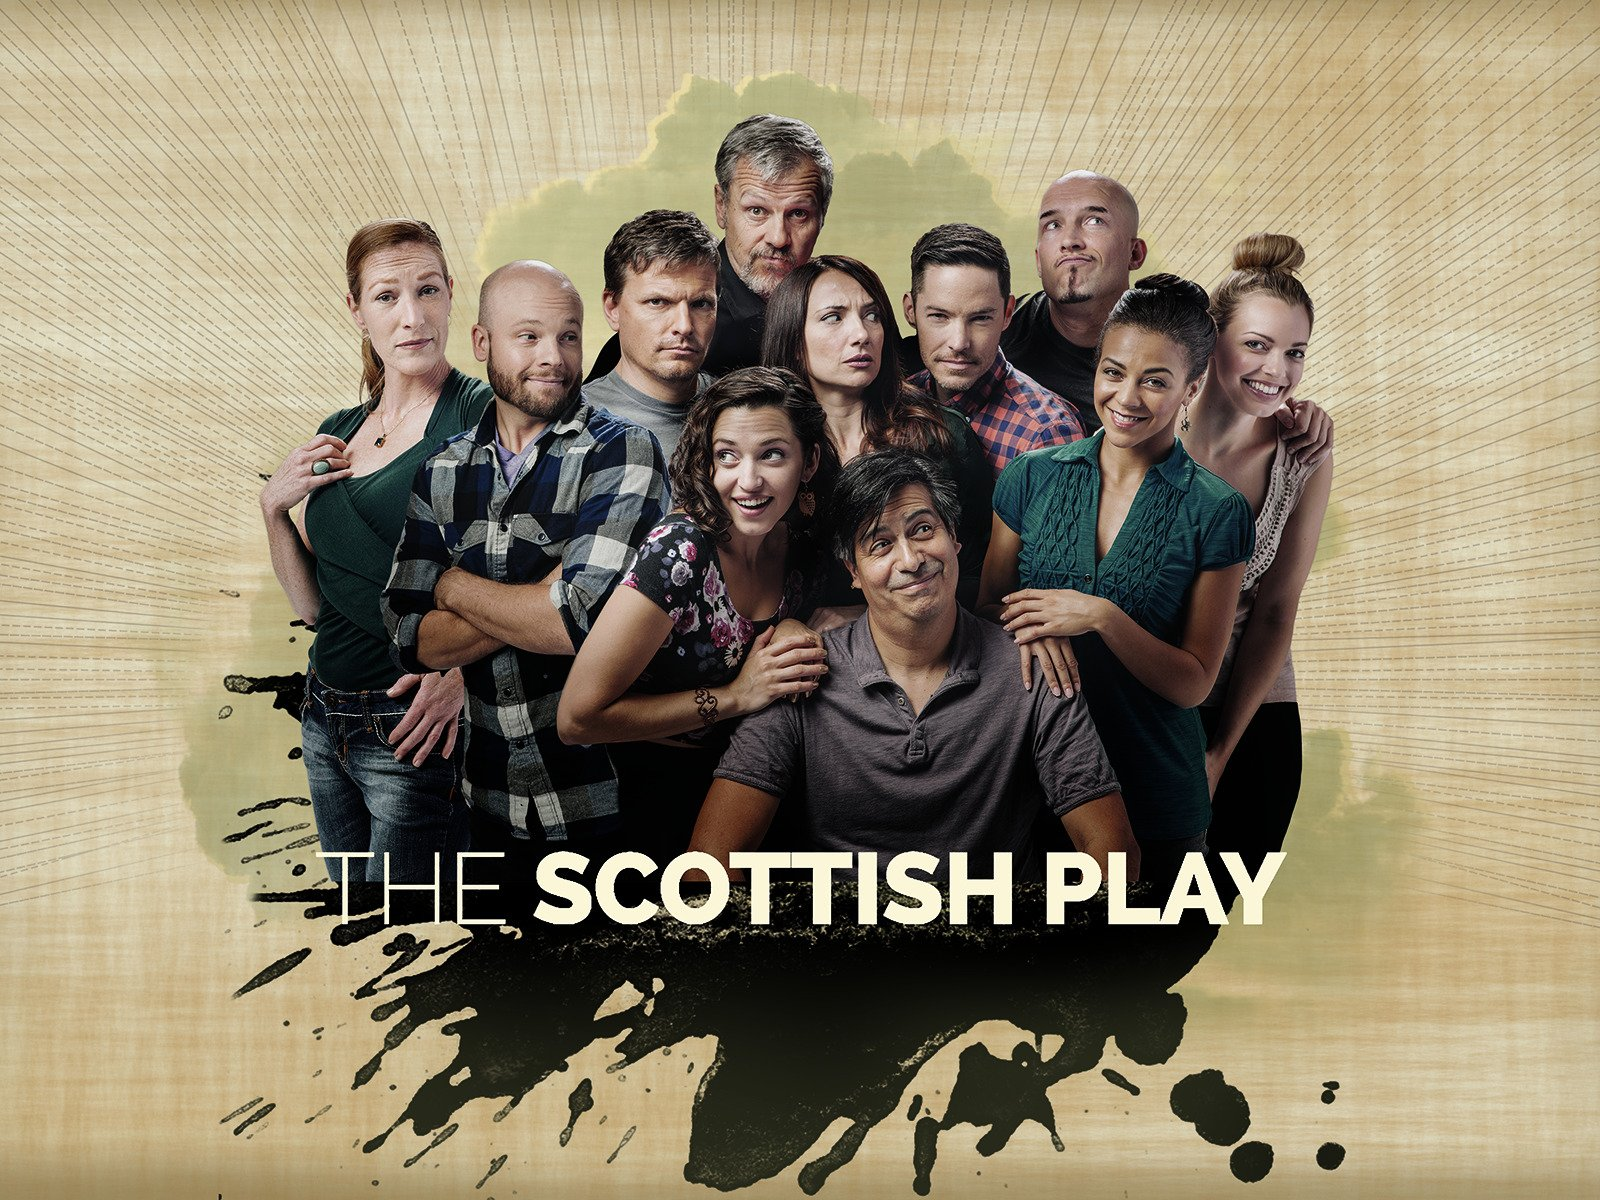 The Scottish Play - Season 1